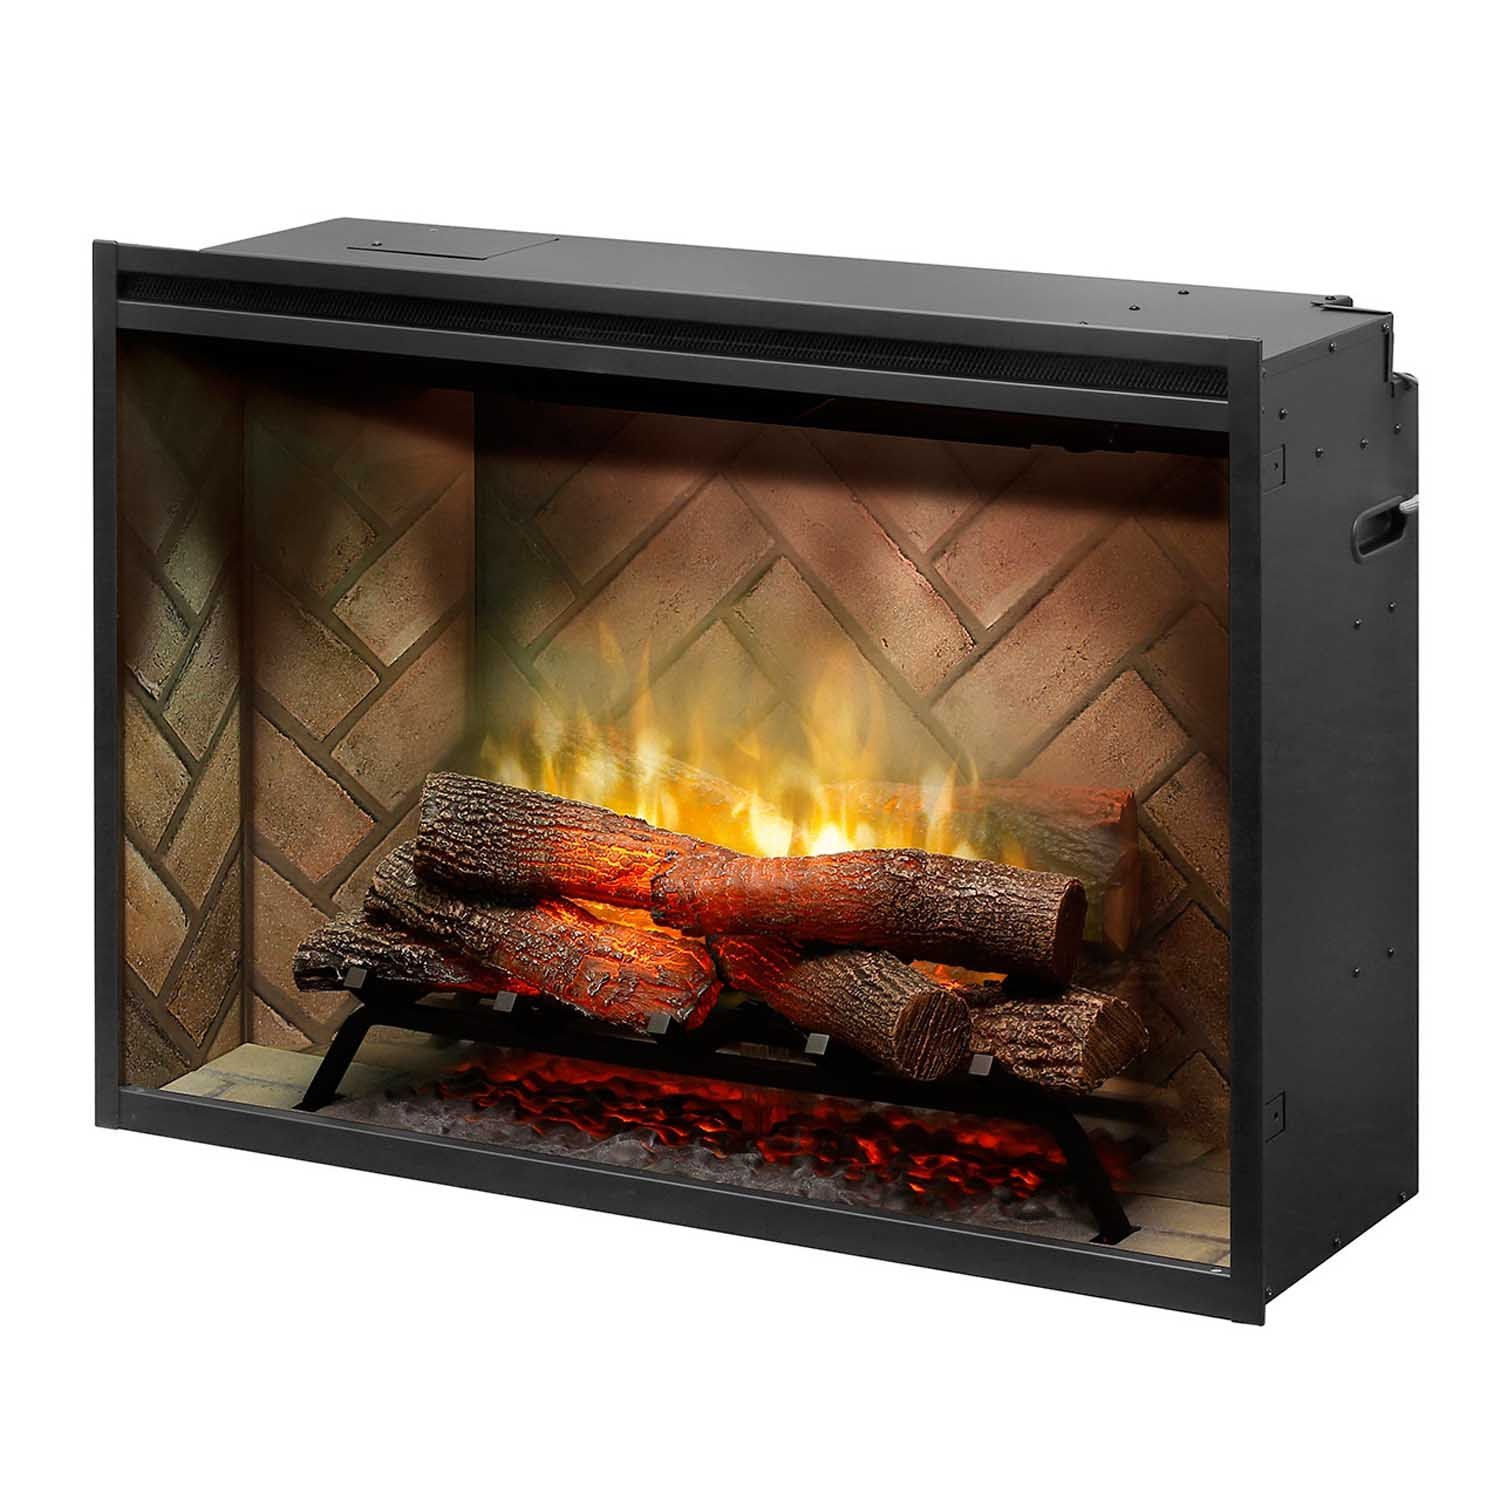 DIMPLEX NORTH AMERICA RBF36 Revillusion Electric Fireplace by DIMPLEX NORTH AMERICA